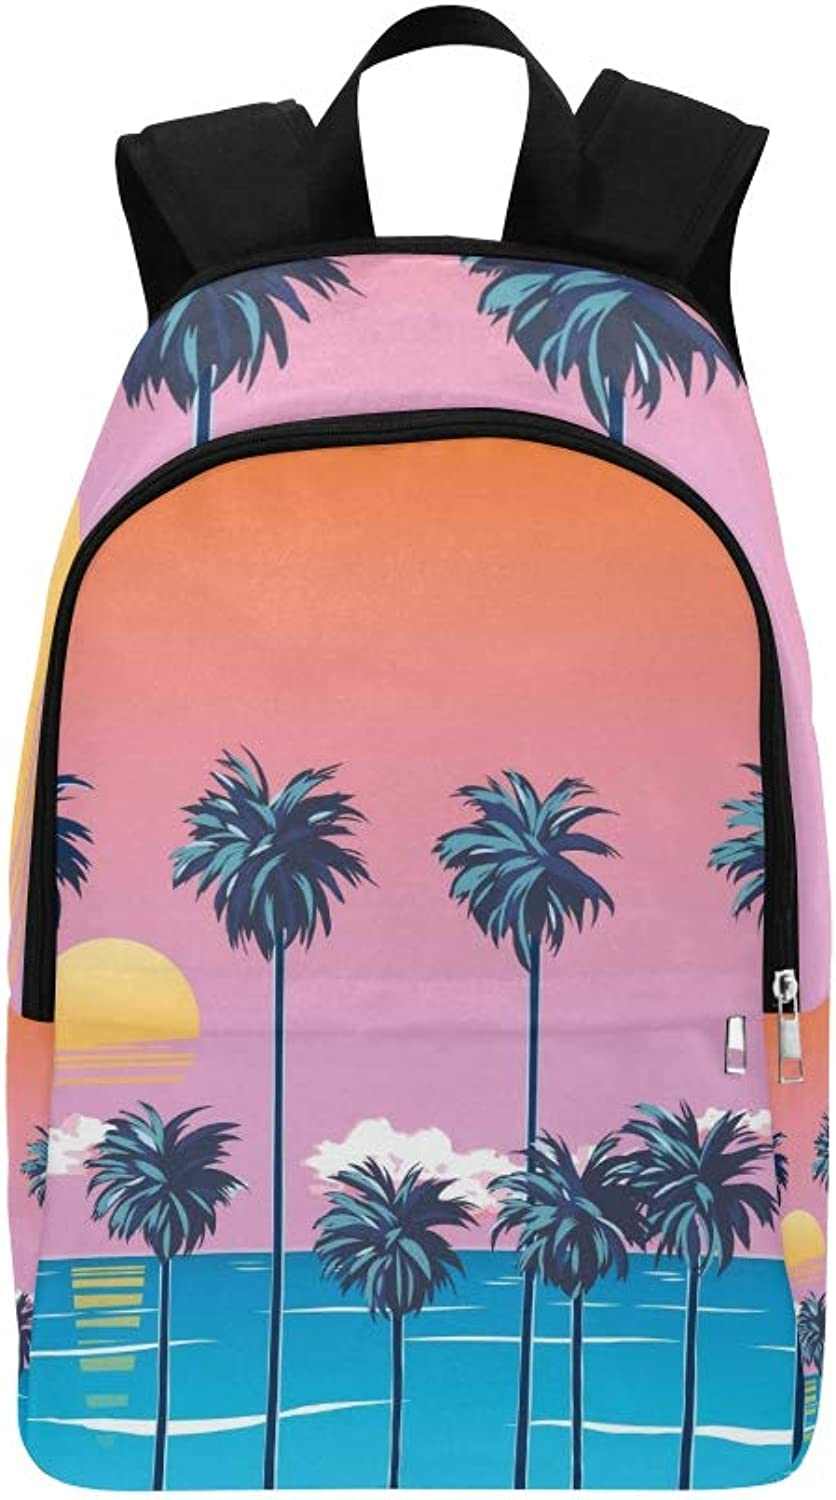 Decline On Beach Palm Trees Casual Daypack Travel Bag College School Backpack for Mens and Women